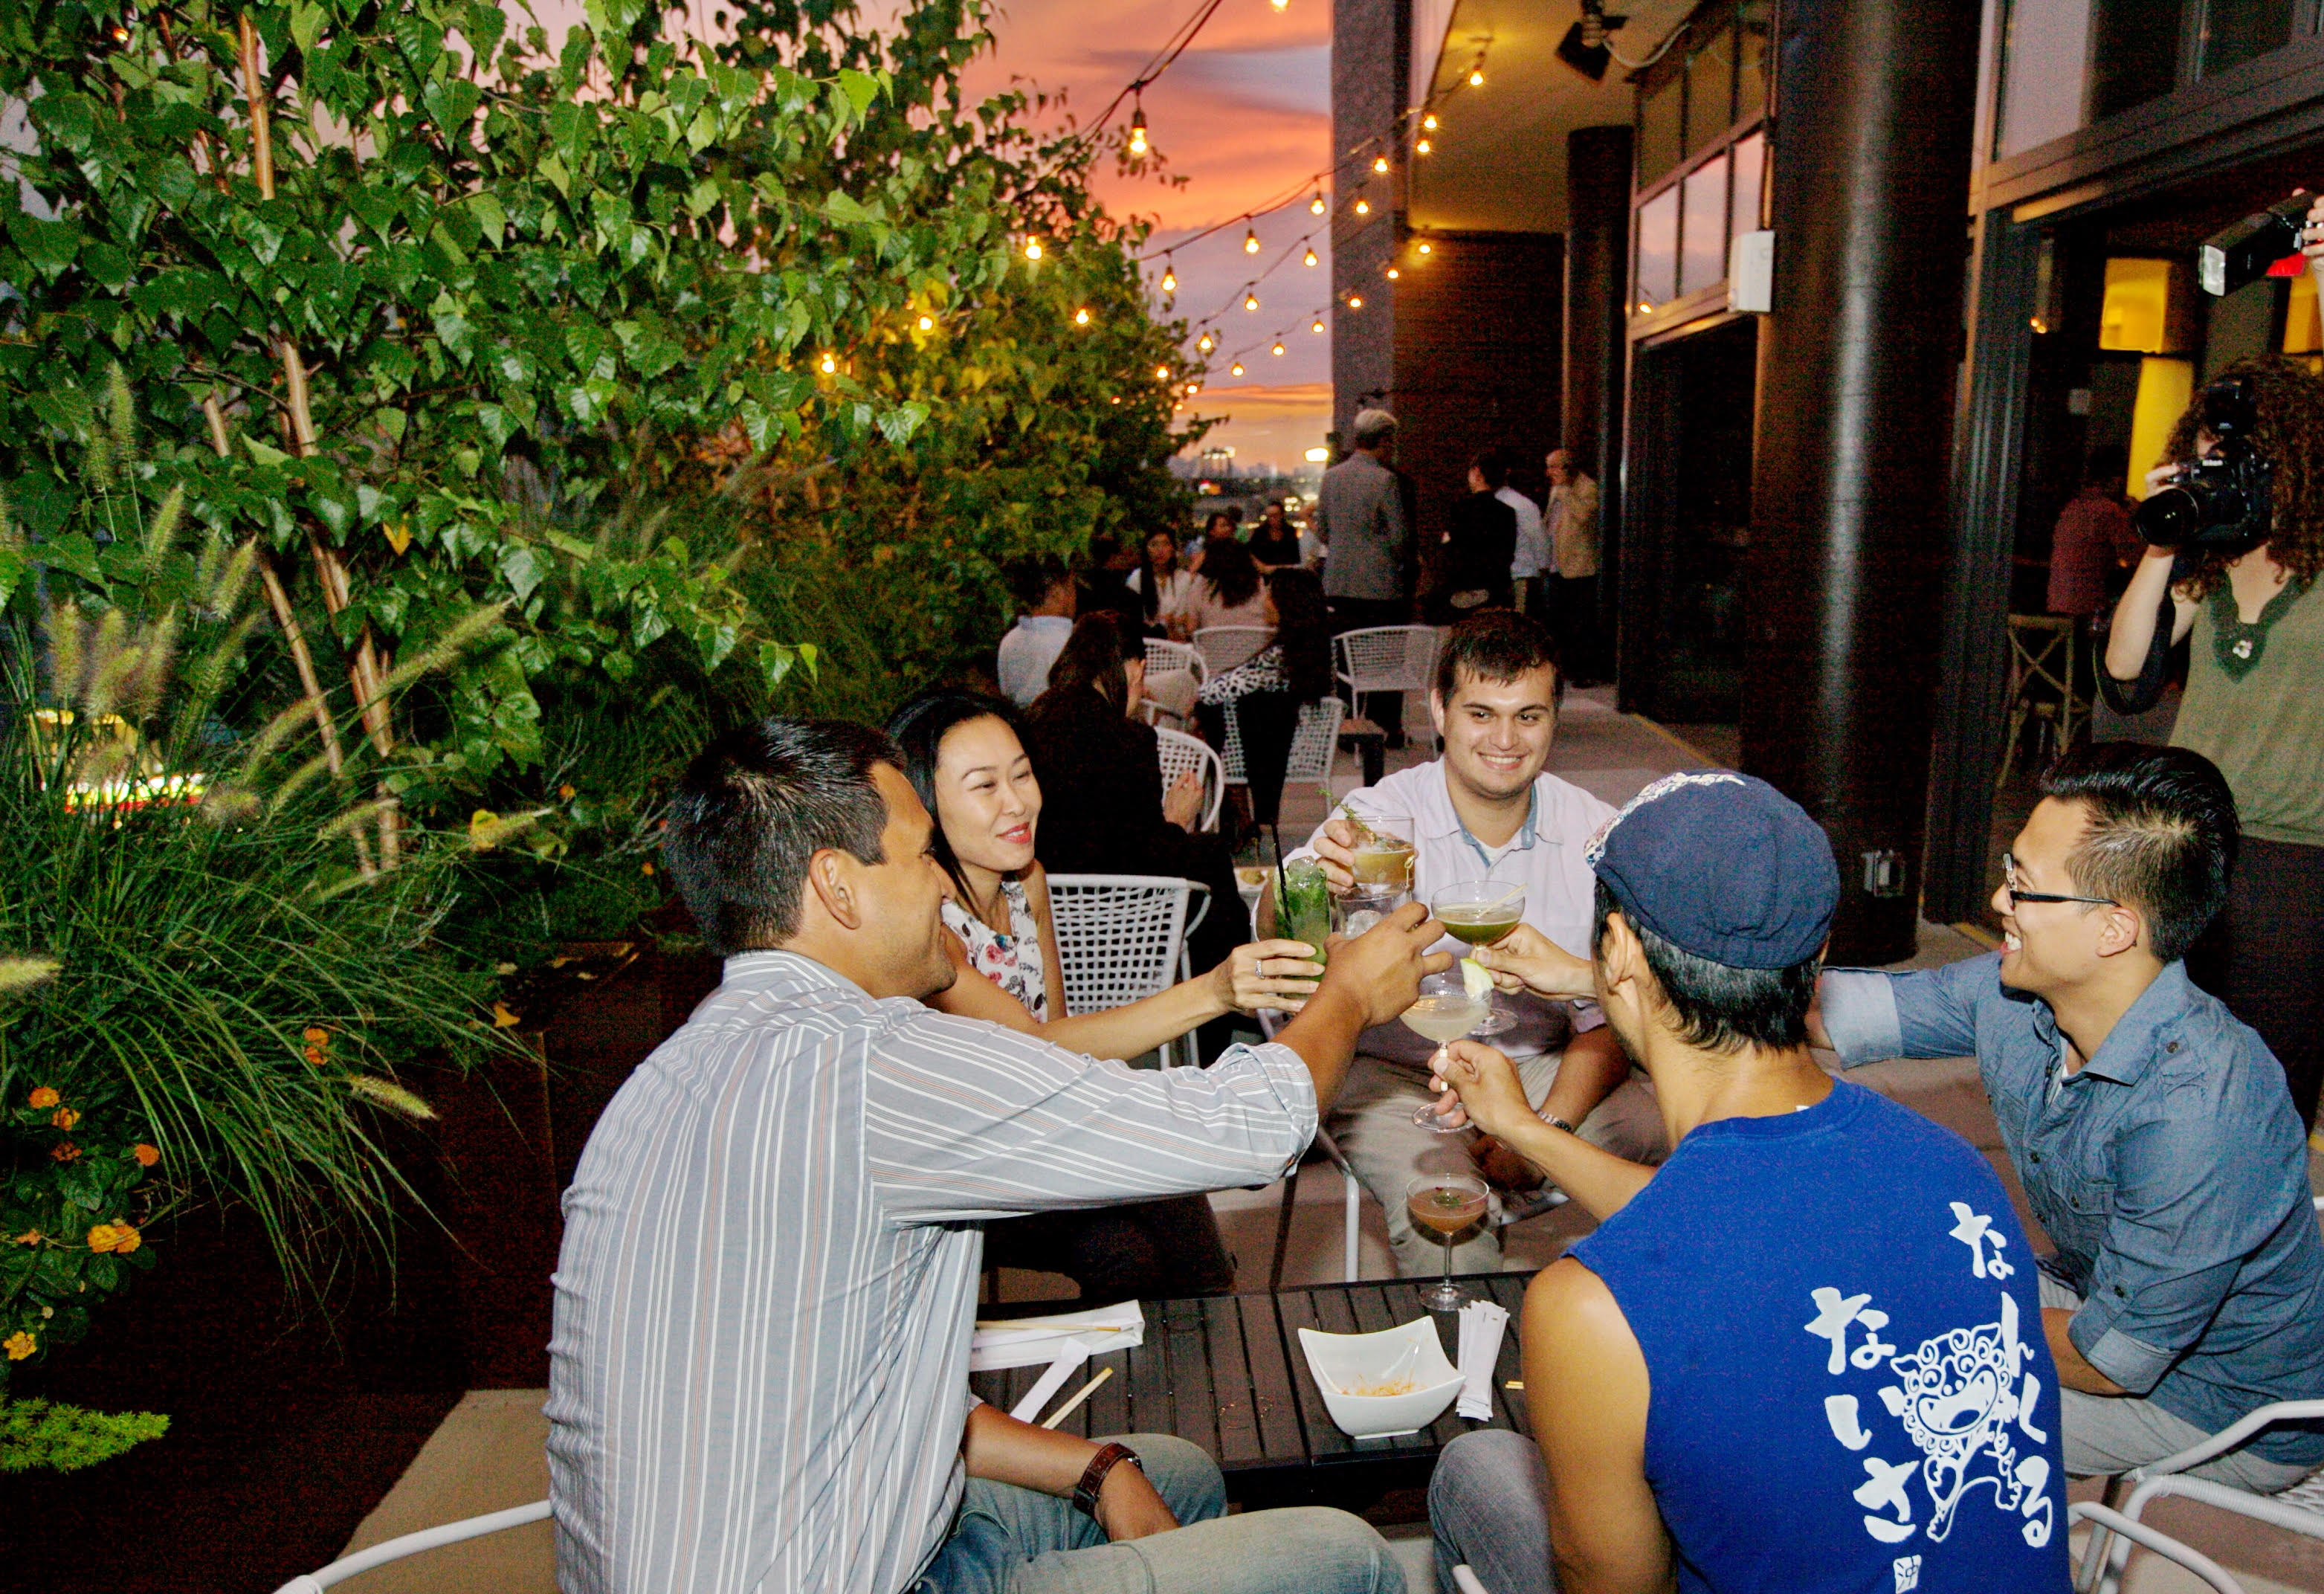 Leaf Bar & Lounge's outdoor patio